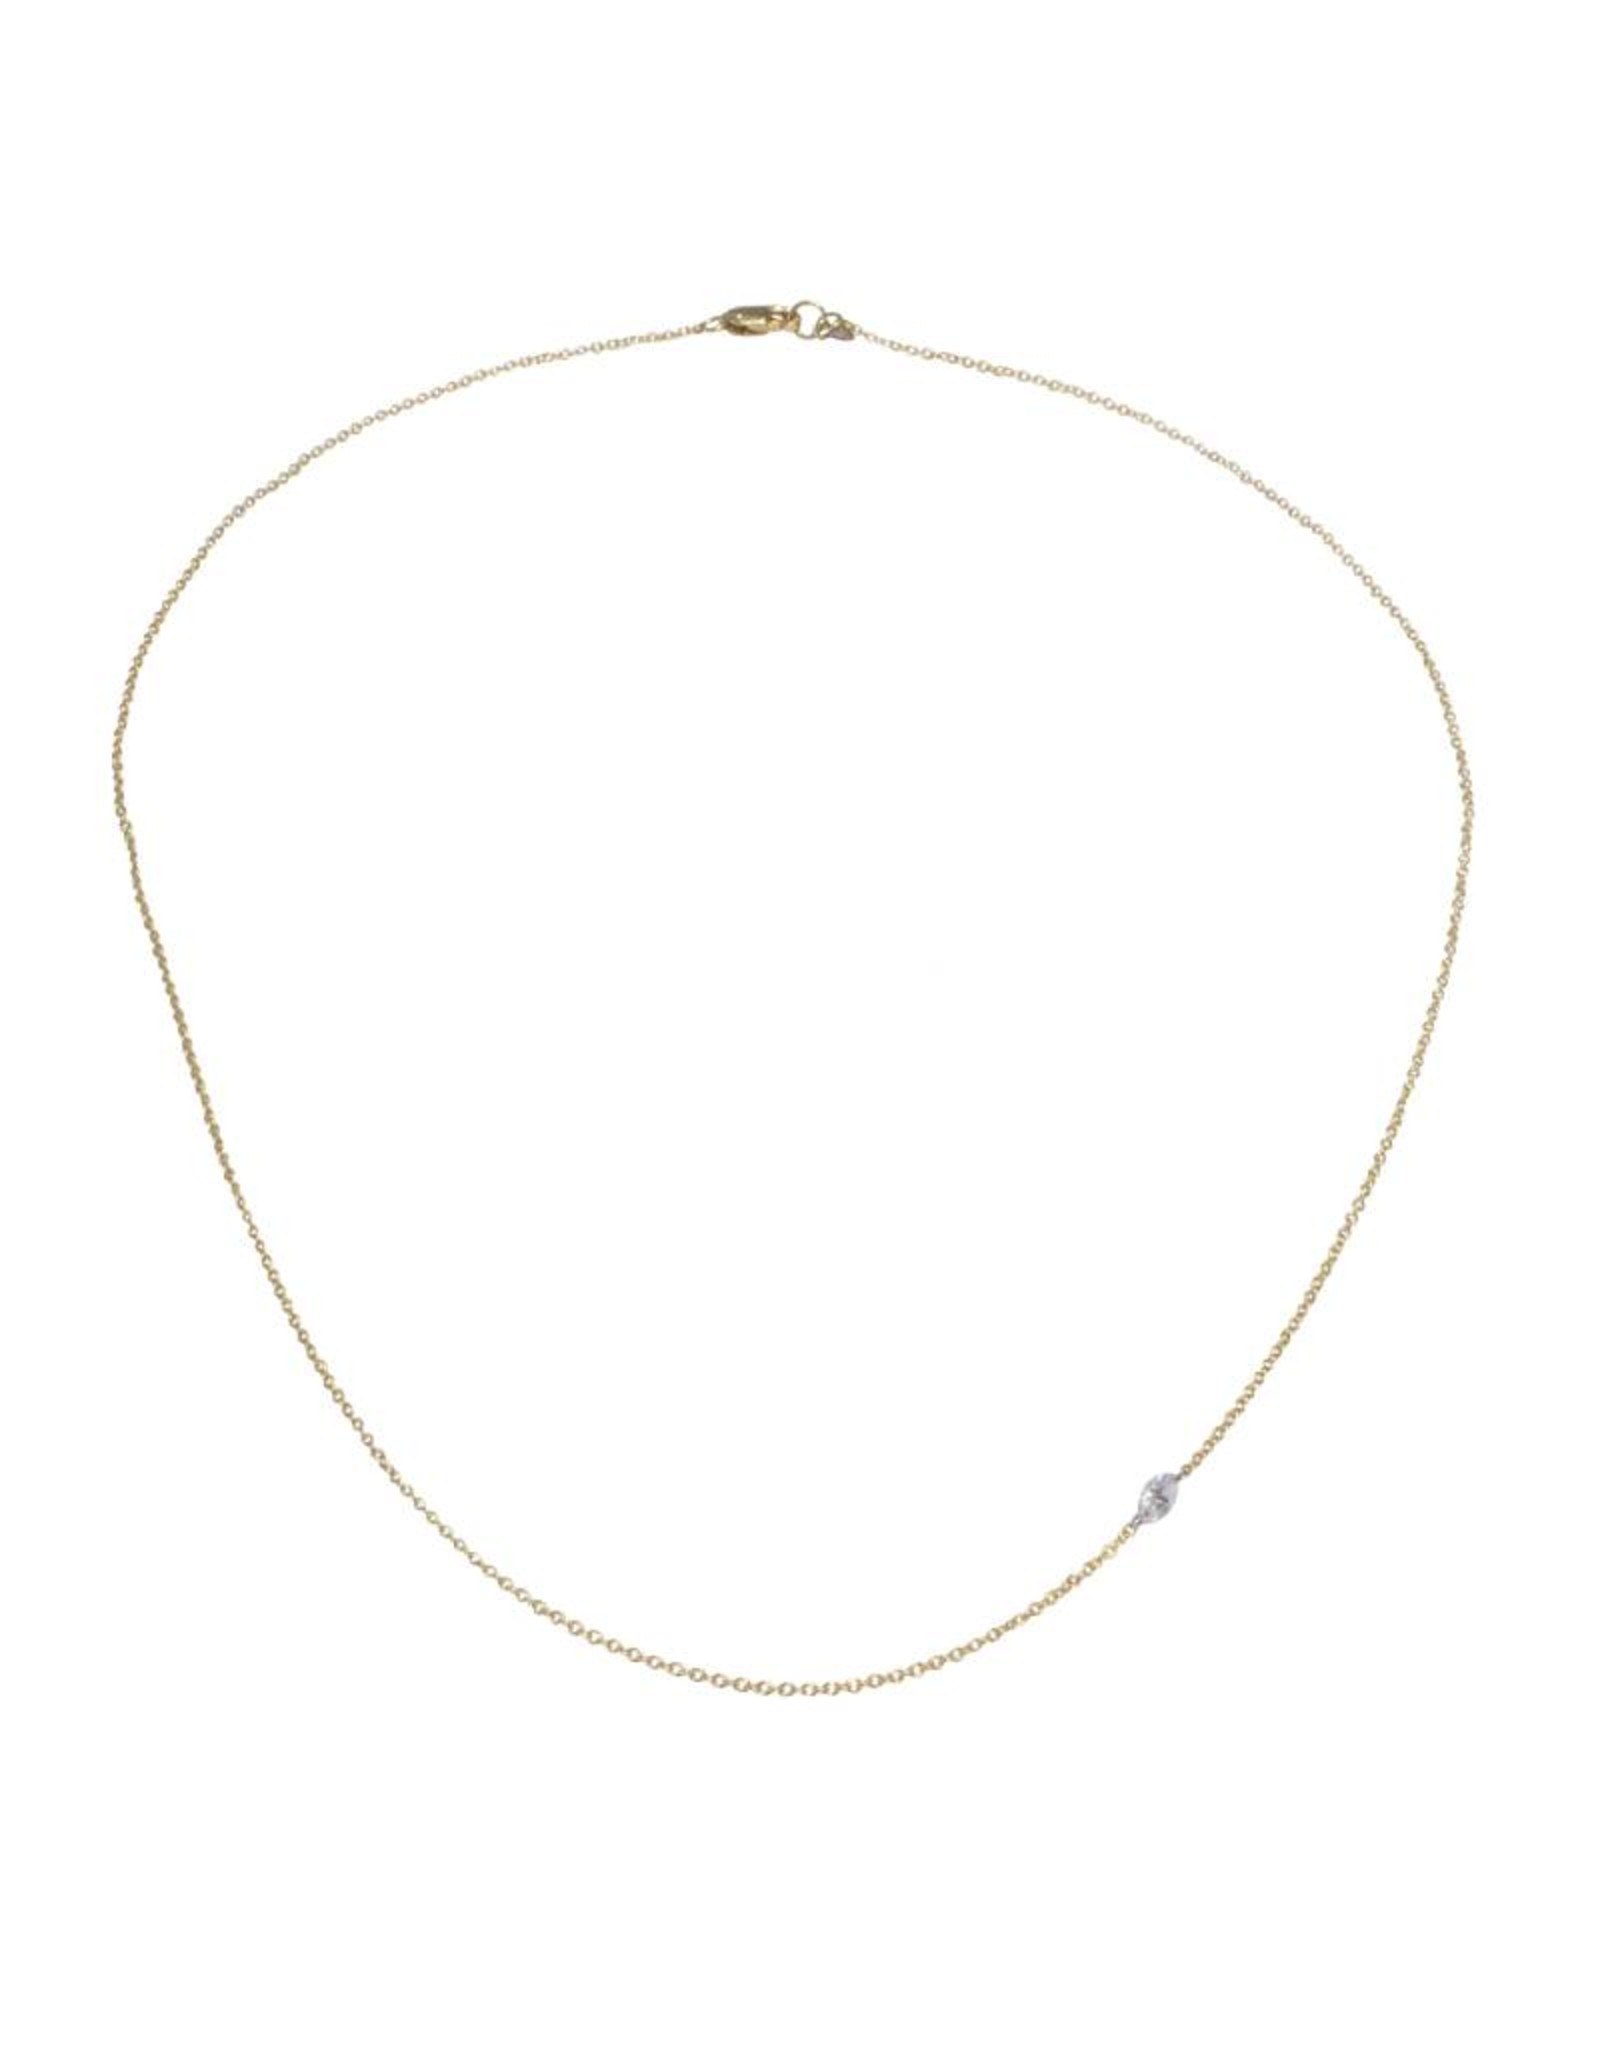 TAP by Todd Pownell Marquise Necklace